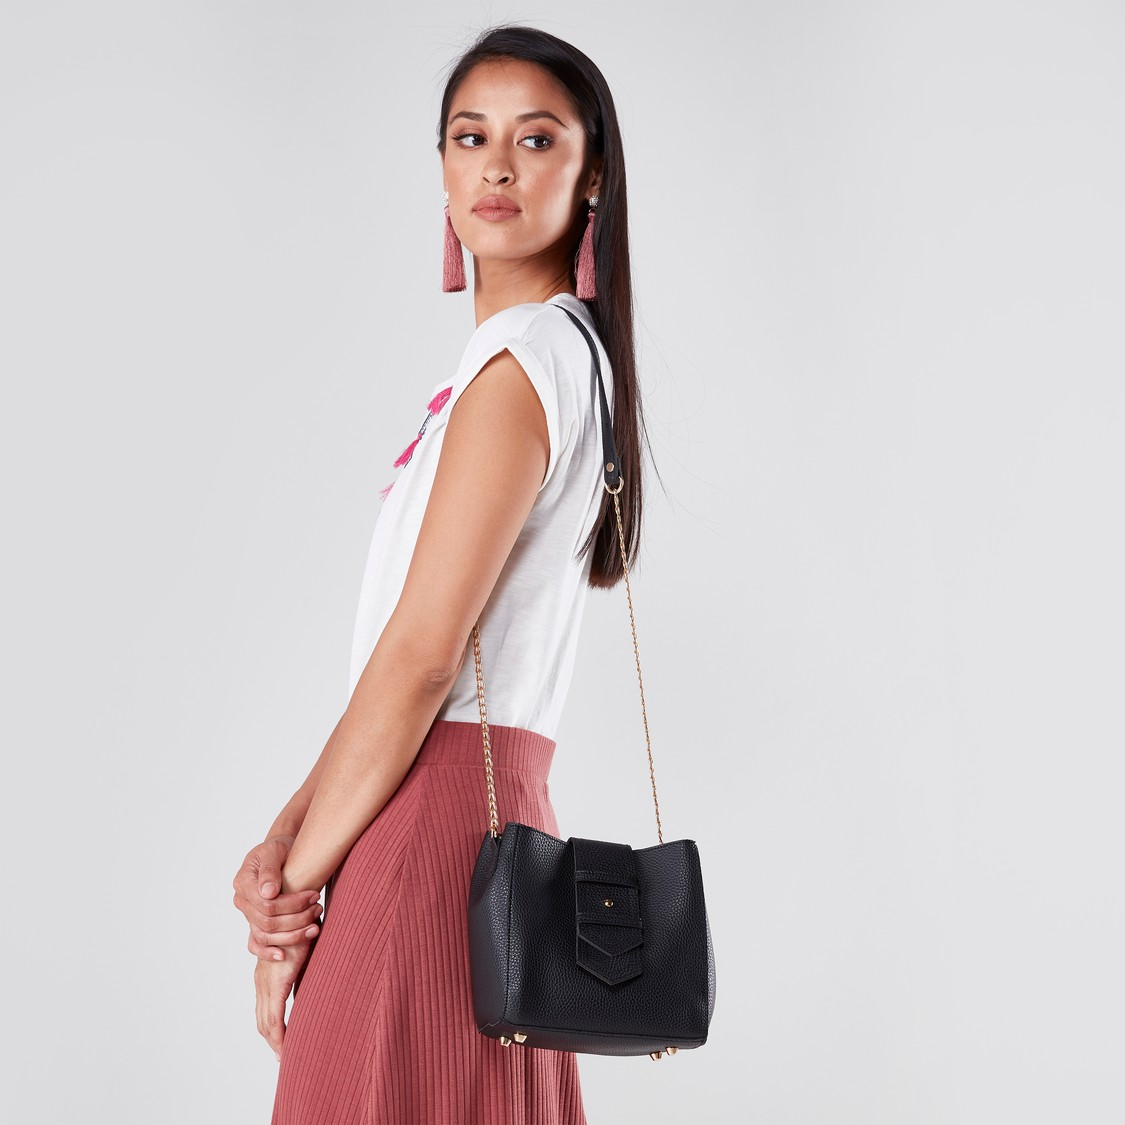 Textured Crossbody Bag with Chain Strap